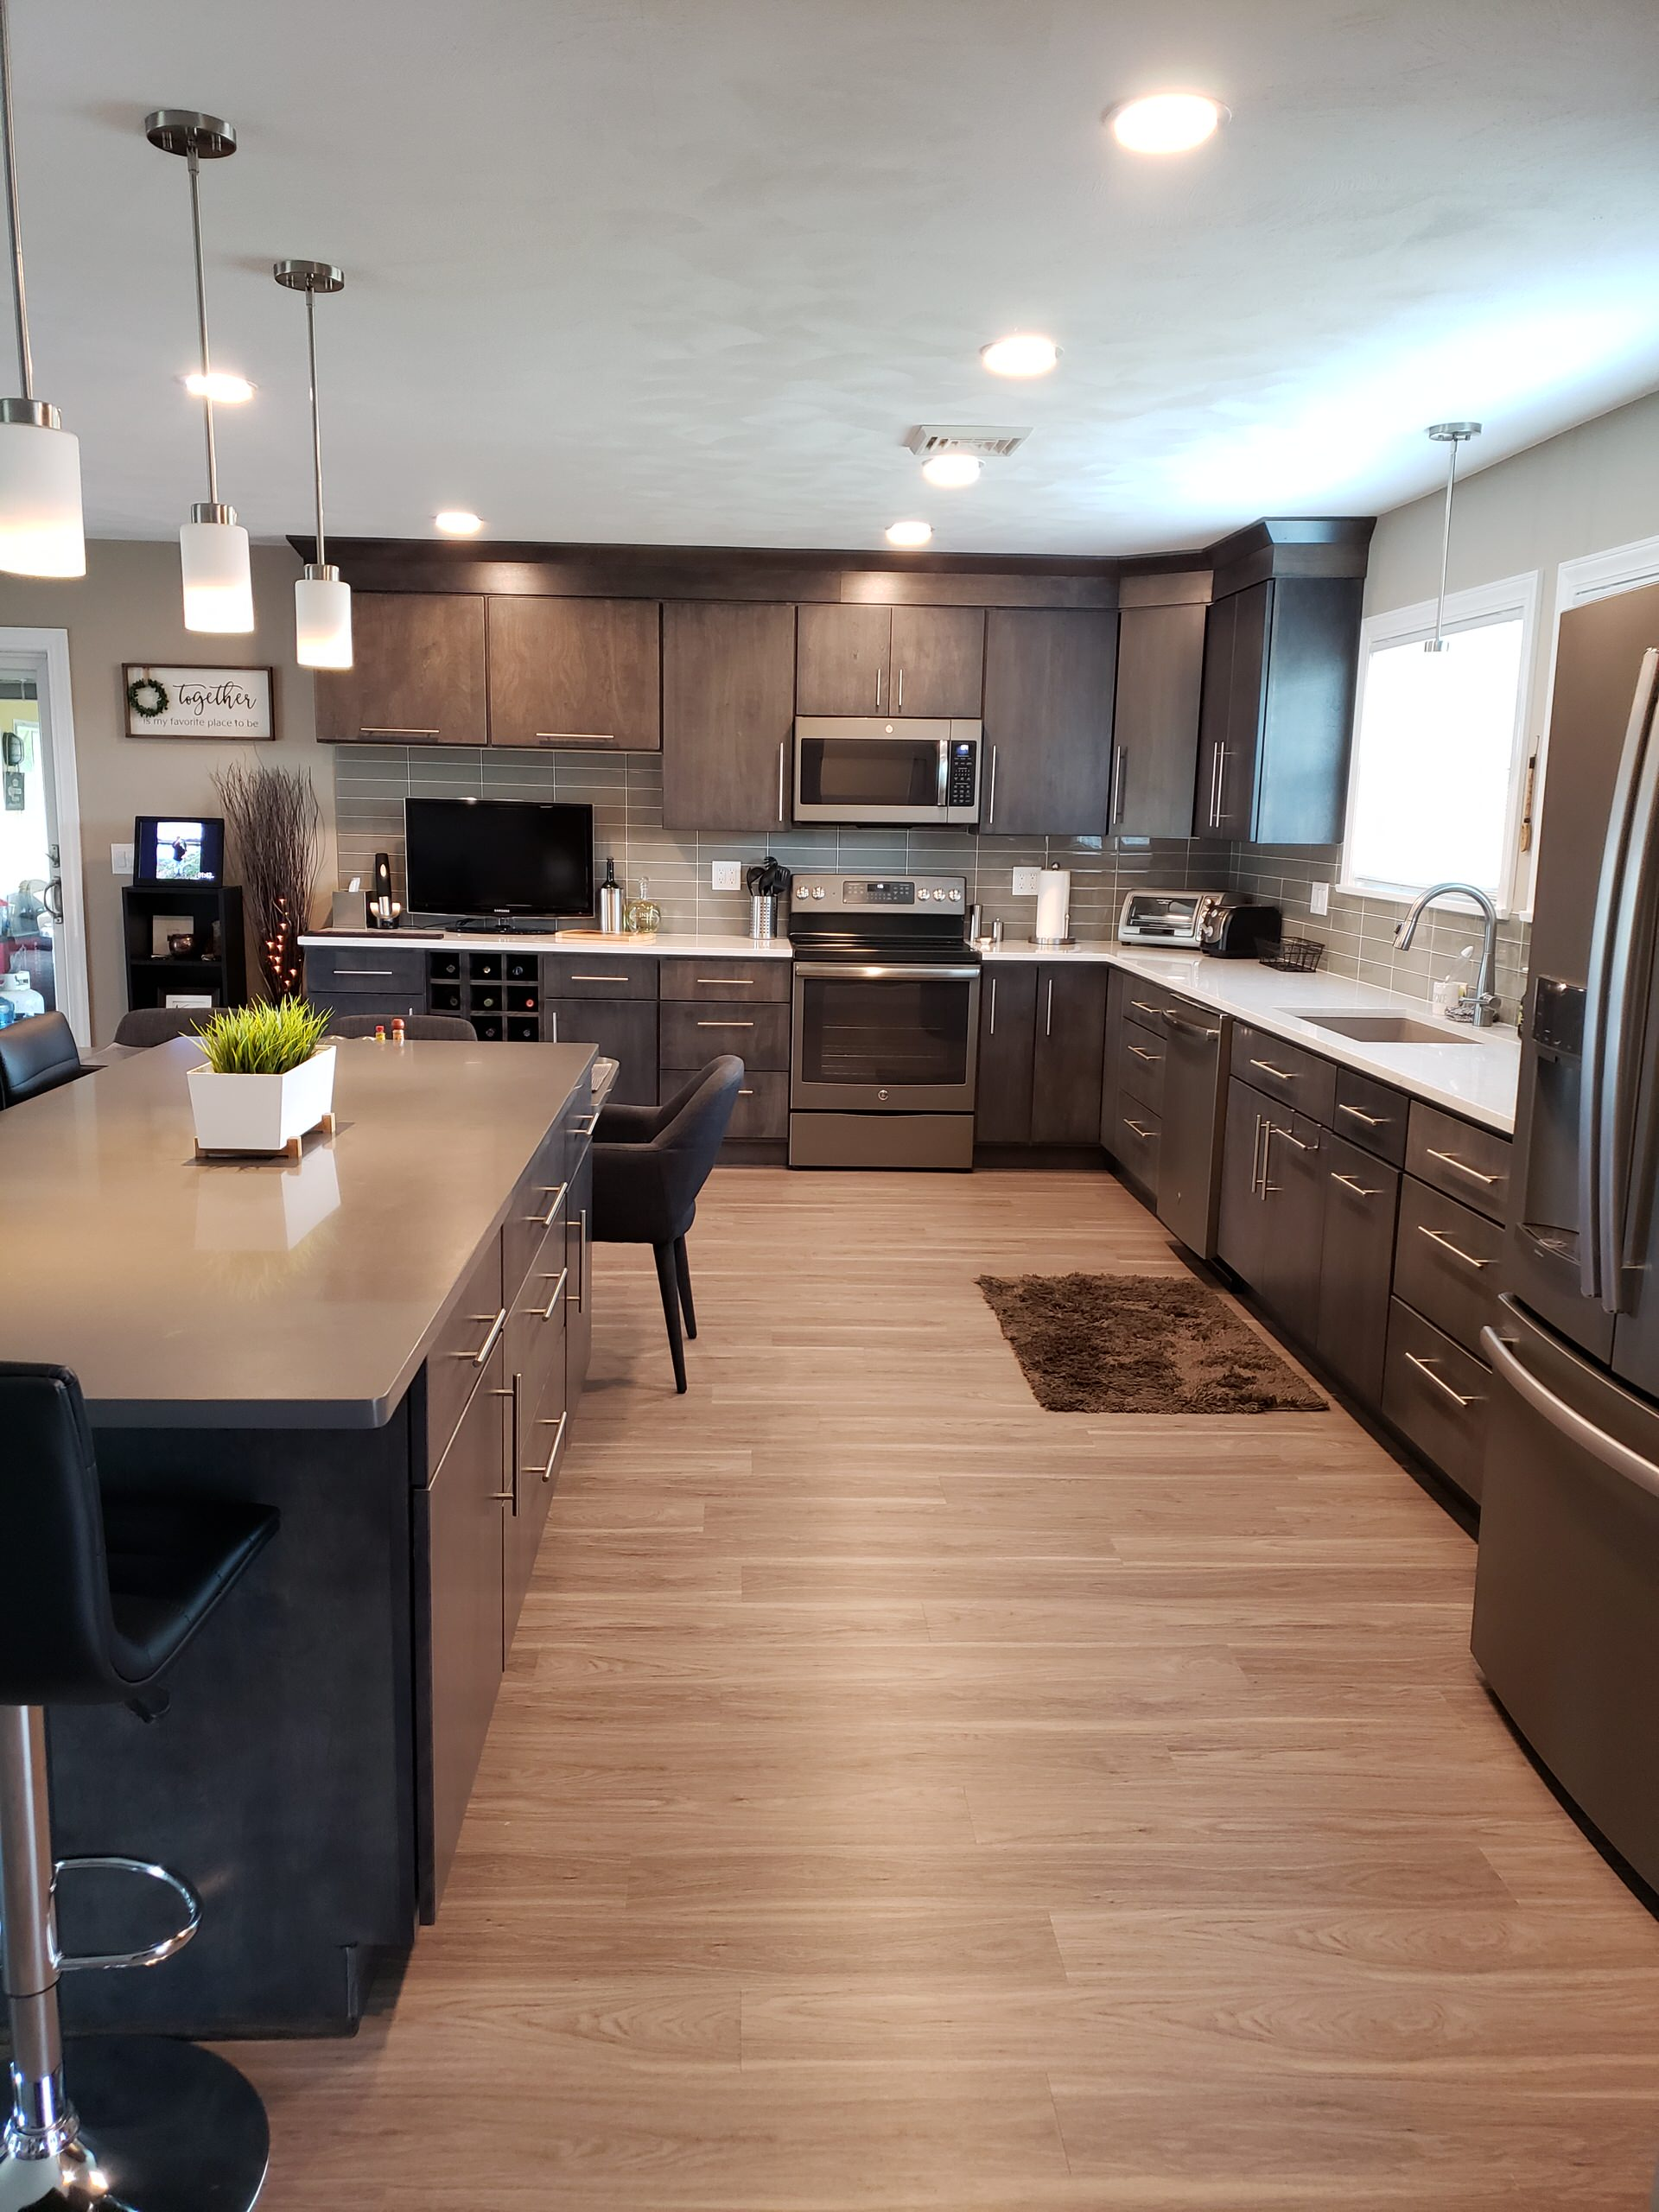 75 Beautiful Vinyl Floor Kitchen With Gray Cabinets Pictures Ideas February 2021 Houzz